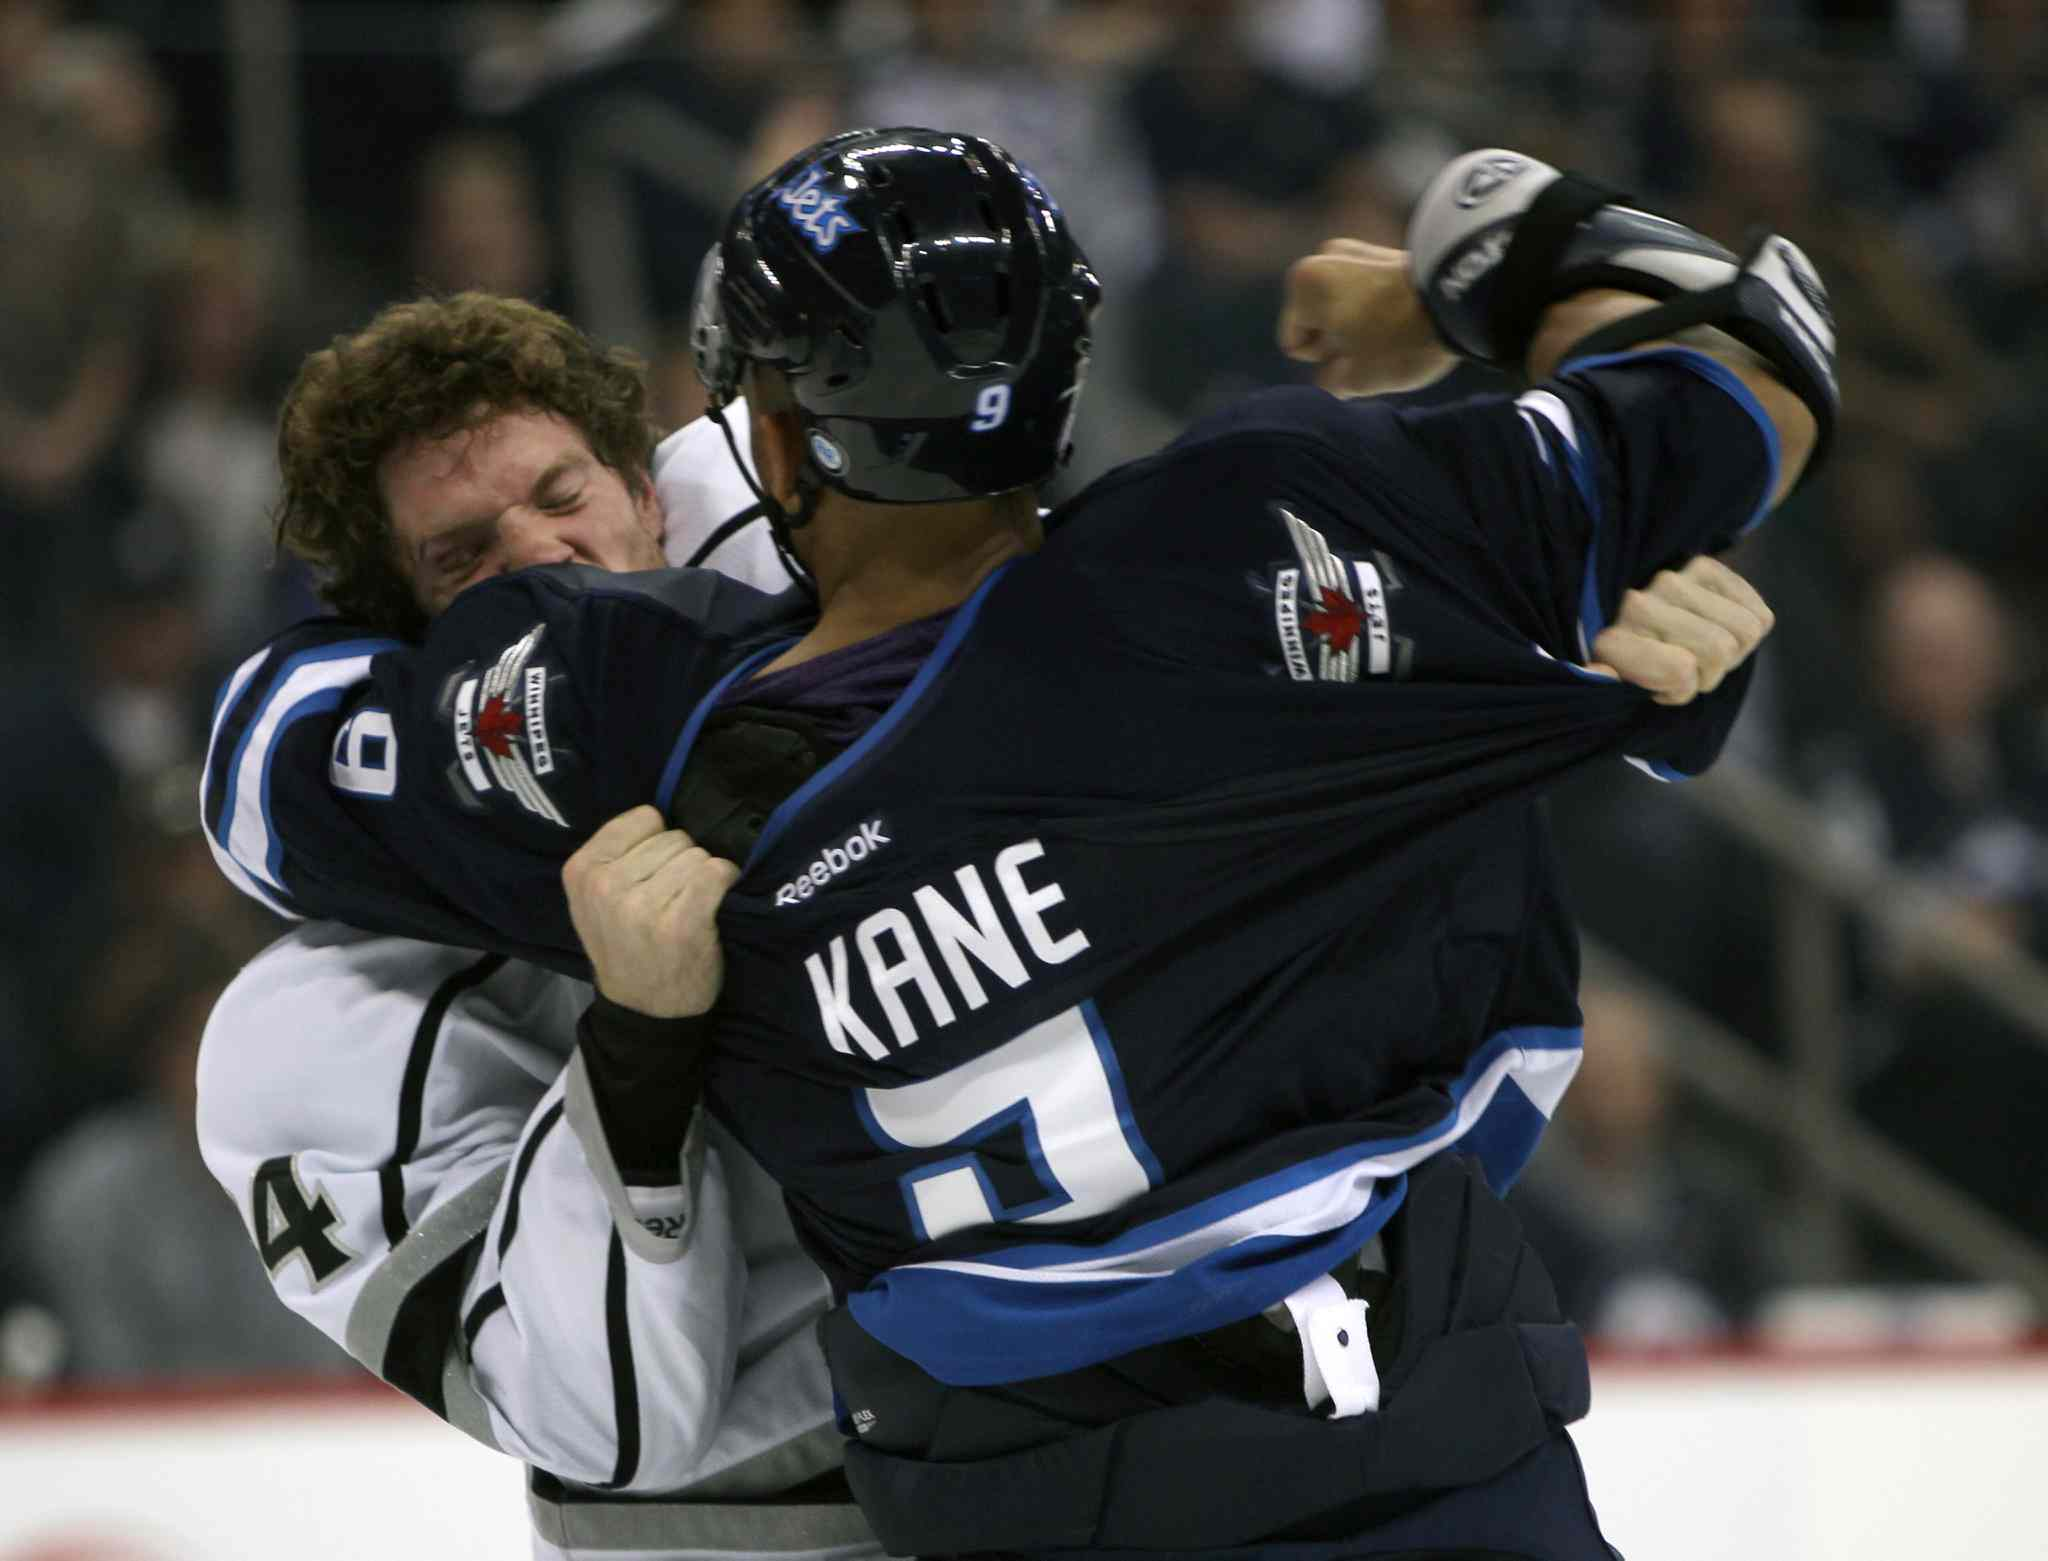 Winnipeg Jets Evander Kane fights with Colin Fraser during the second period.